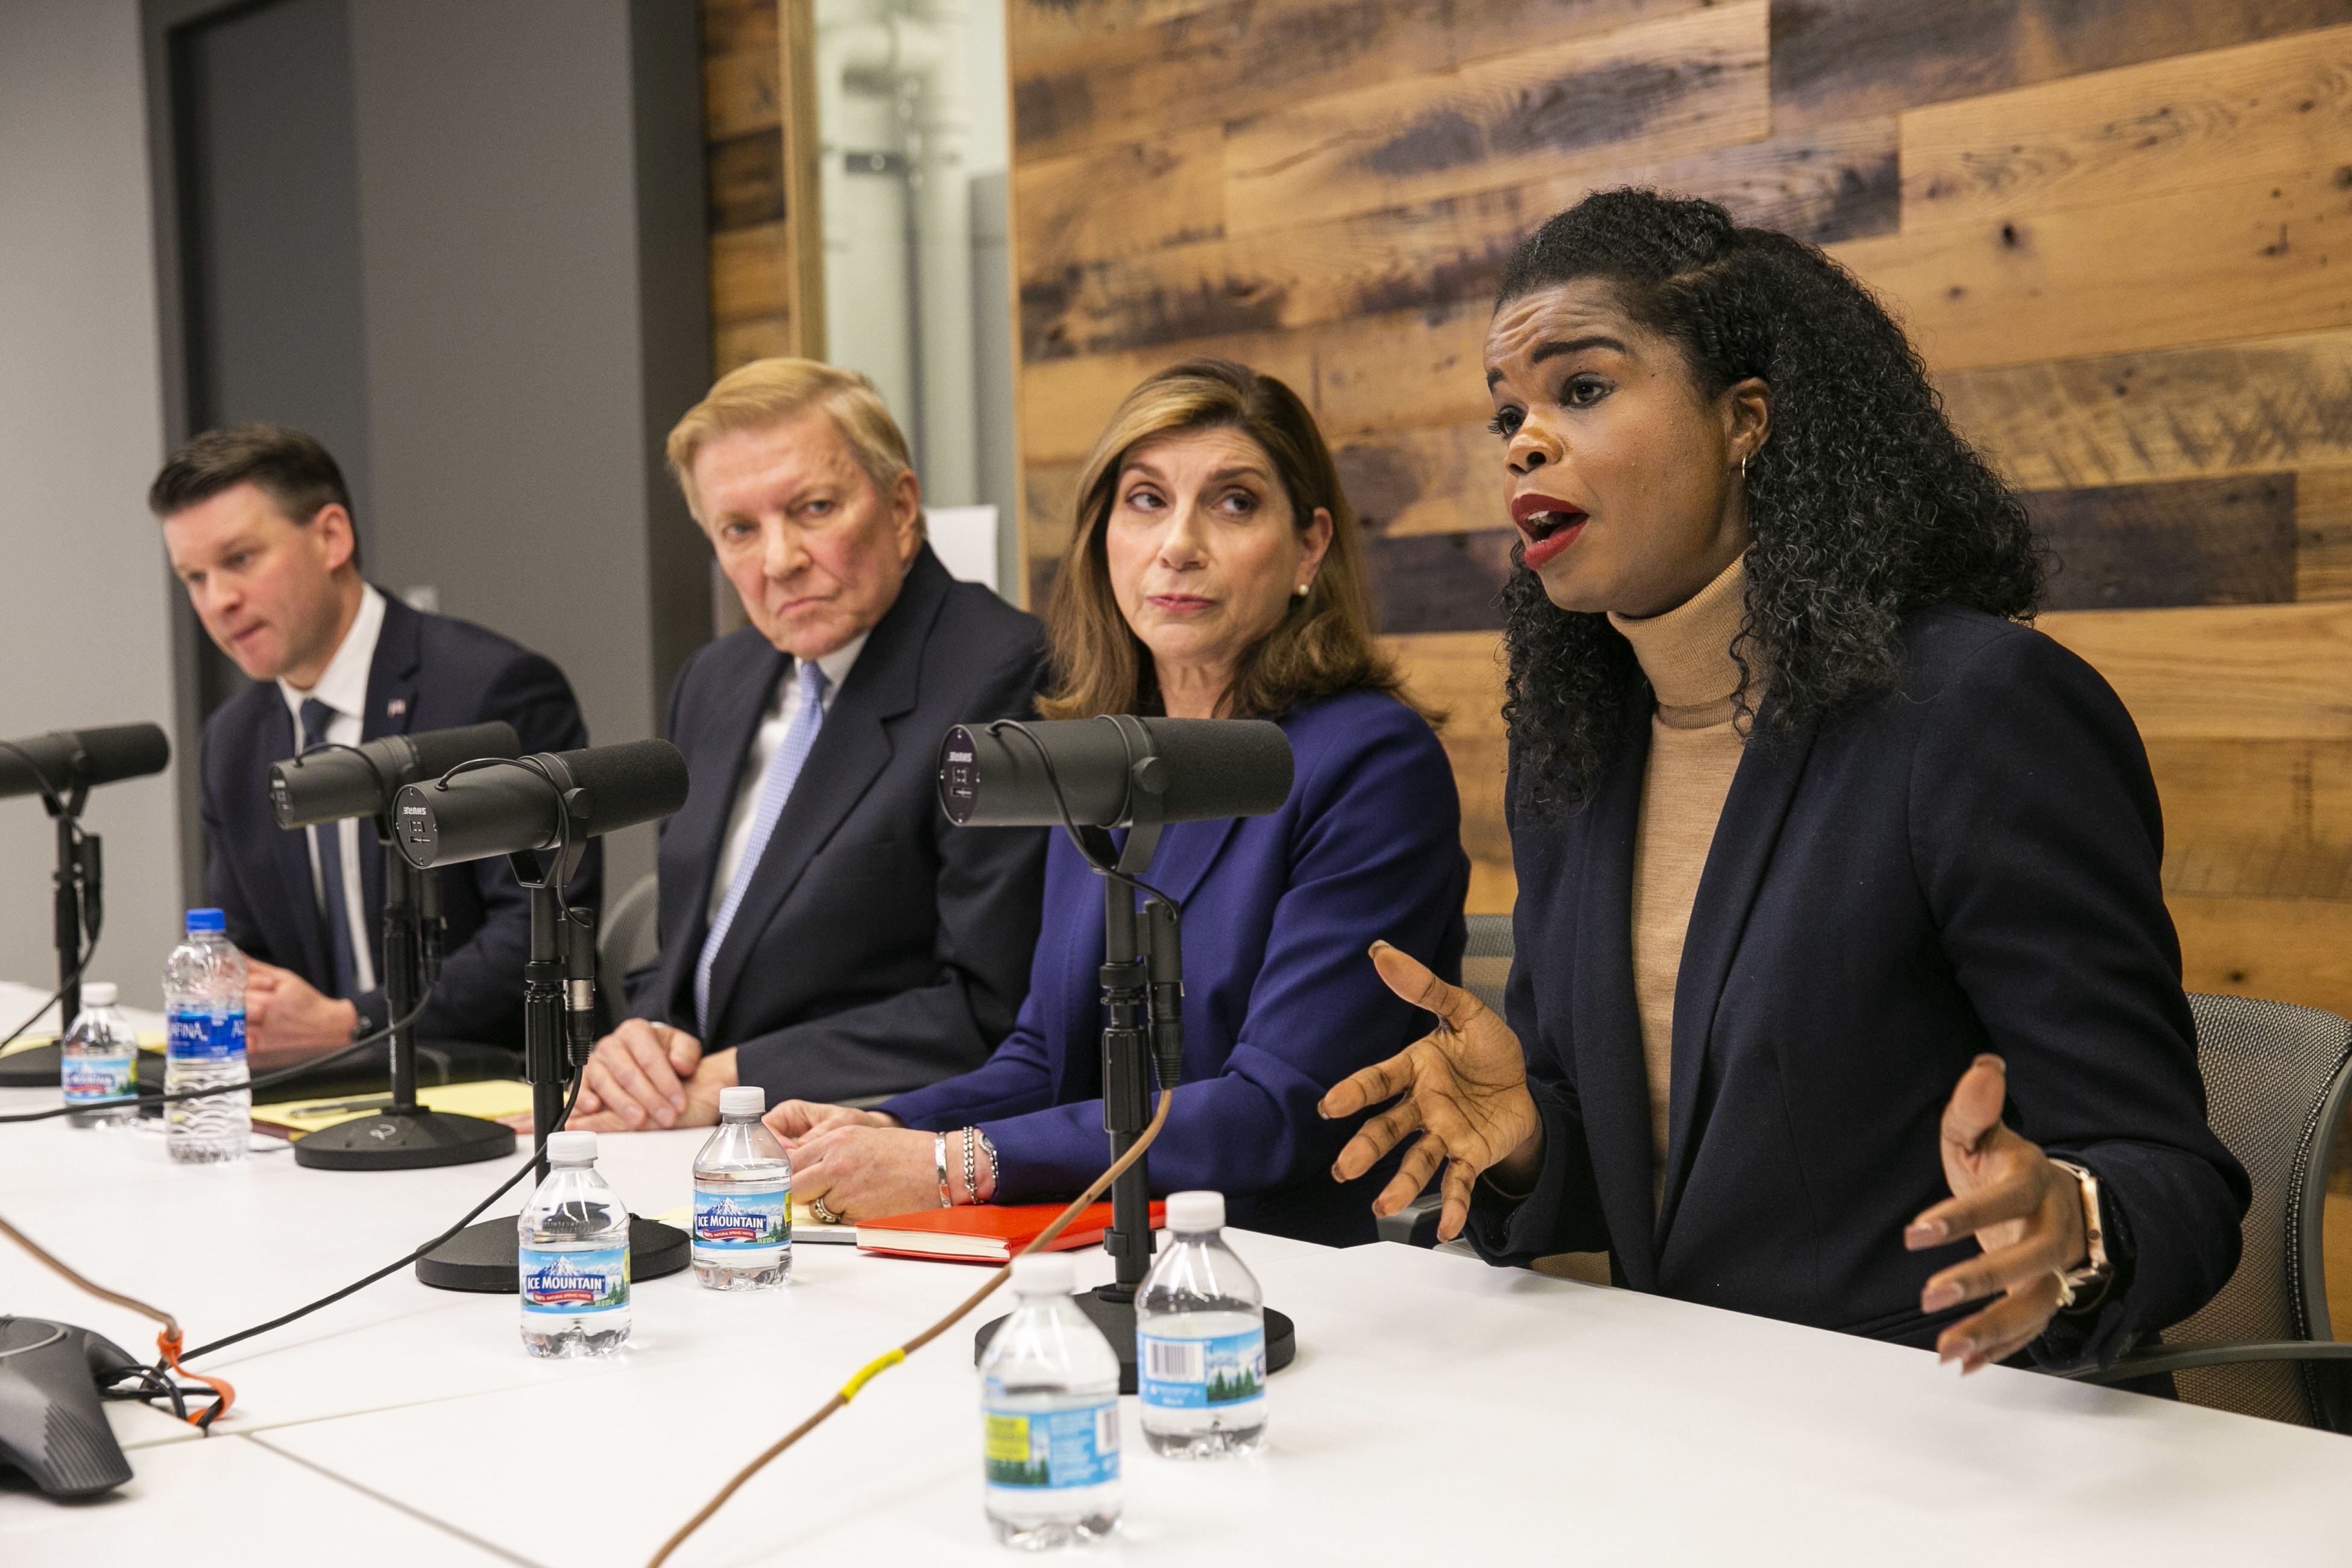 Cook County Democratic State's Attorney candidates, from left, Bill Conway, Bob Fioretti, Donna More and incumbent Kim Foxx meet with the Sun-Times Editorial Board on Tuesday.